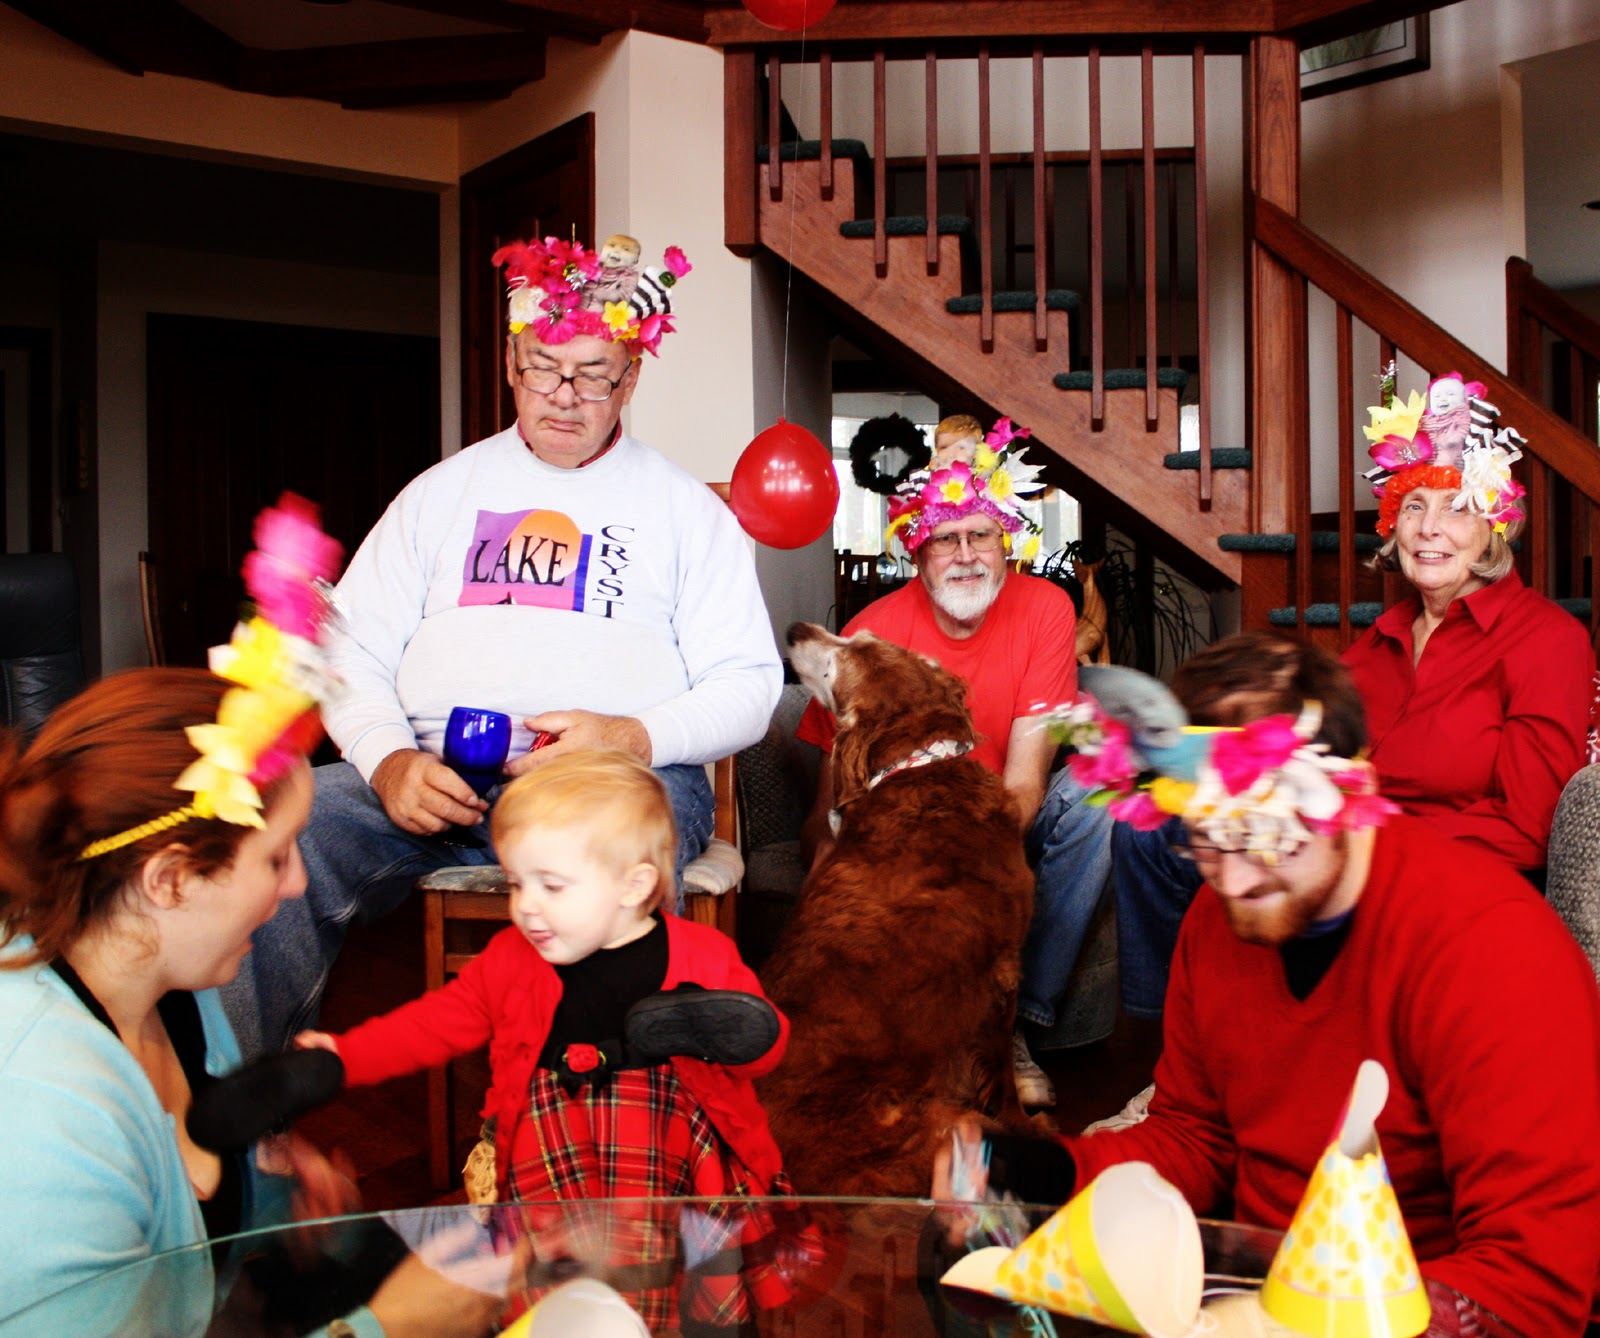 My Family Wearing Abigail Themed Party Hats At Abigails First Birthday Note Every Adult On The Property That Day Was One Of These